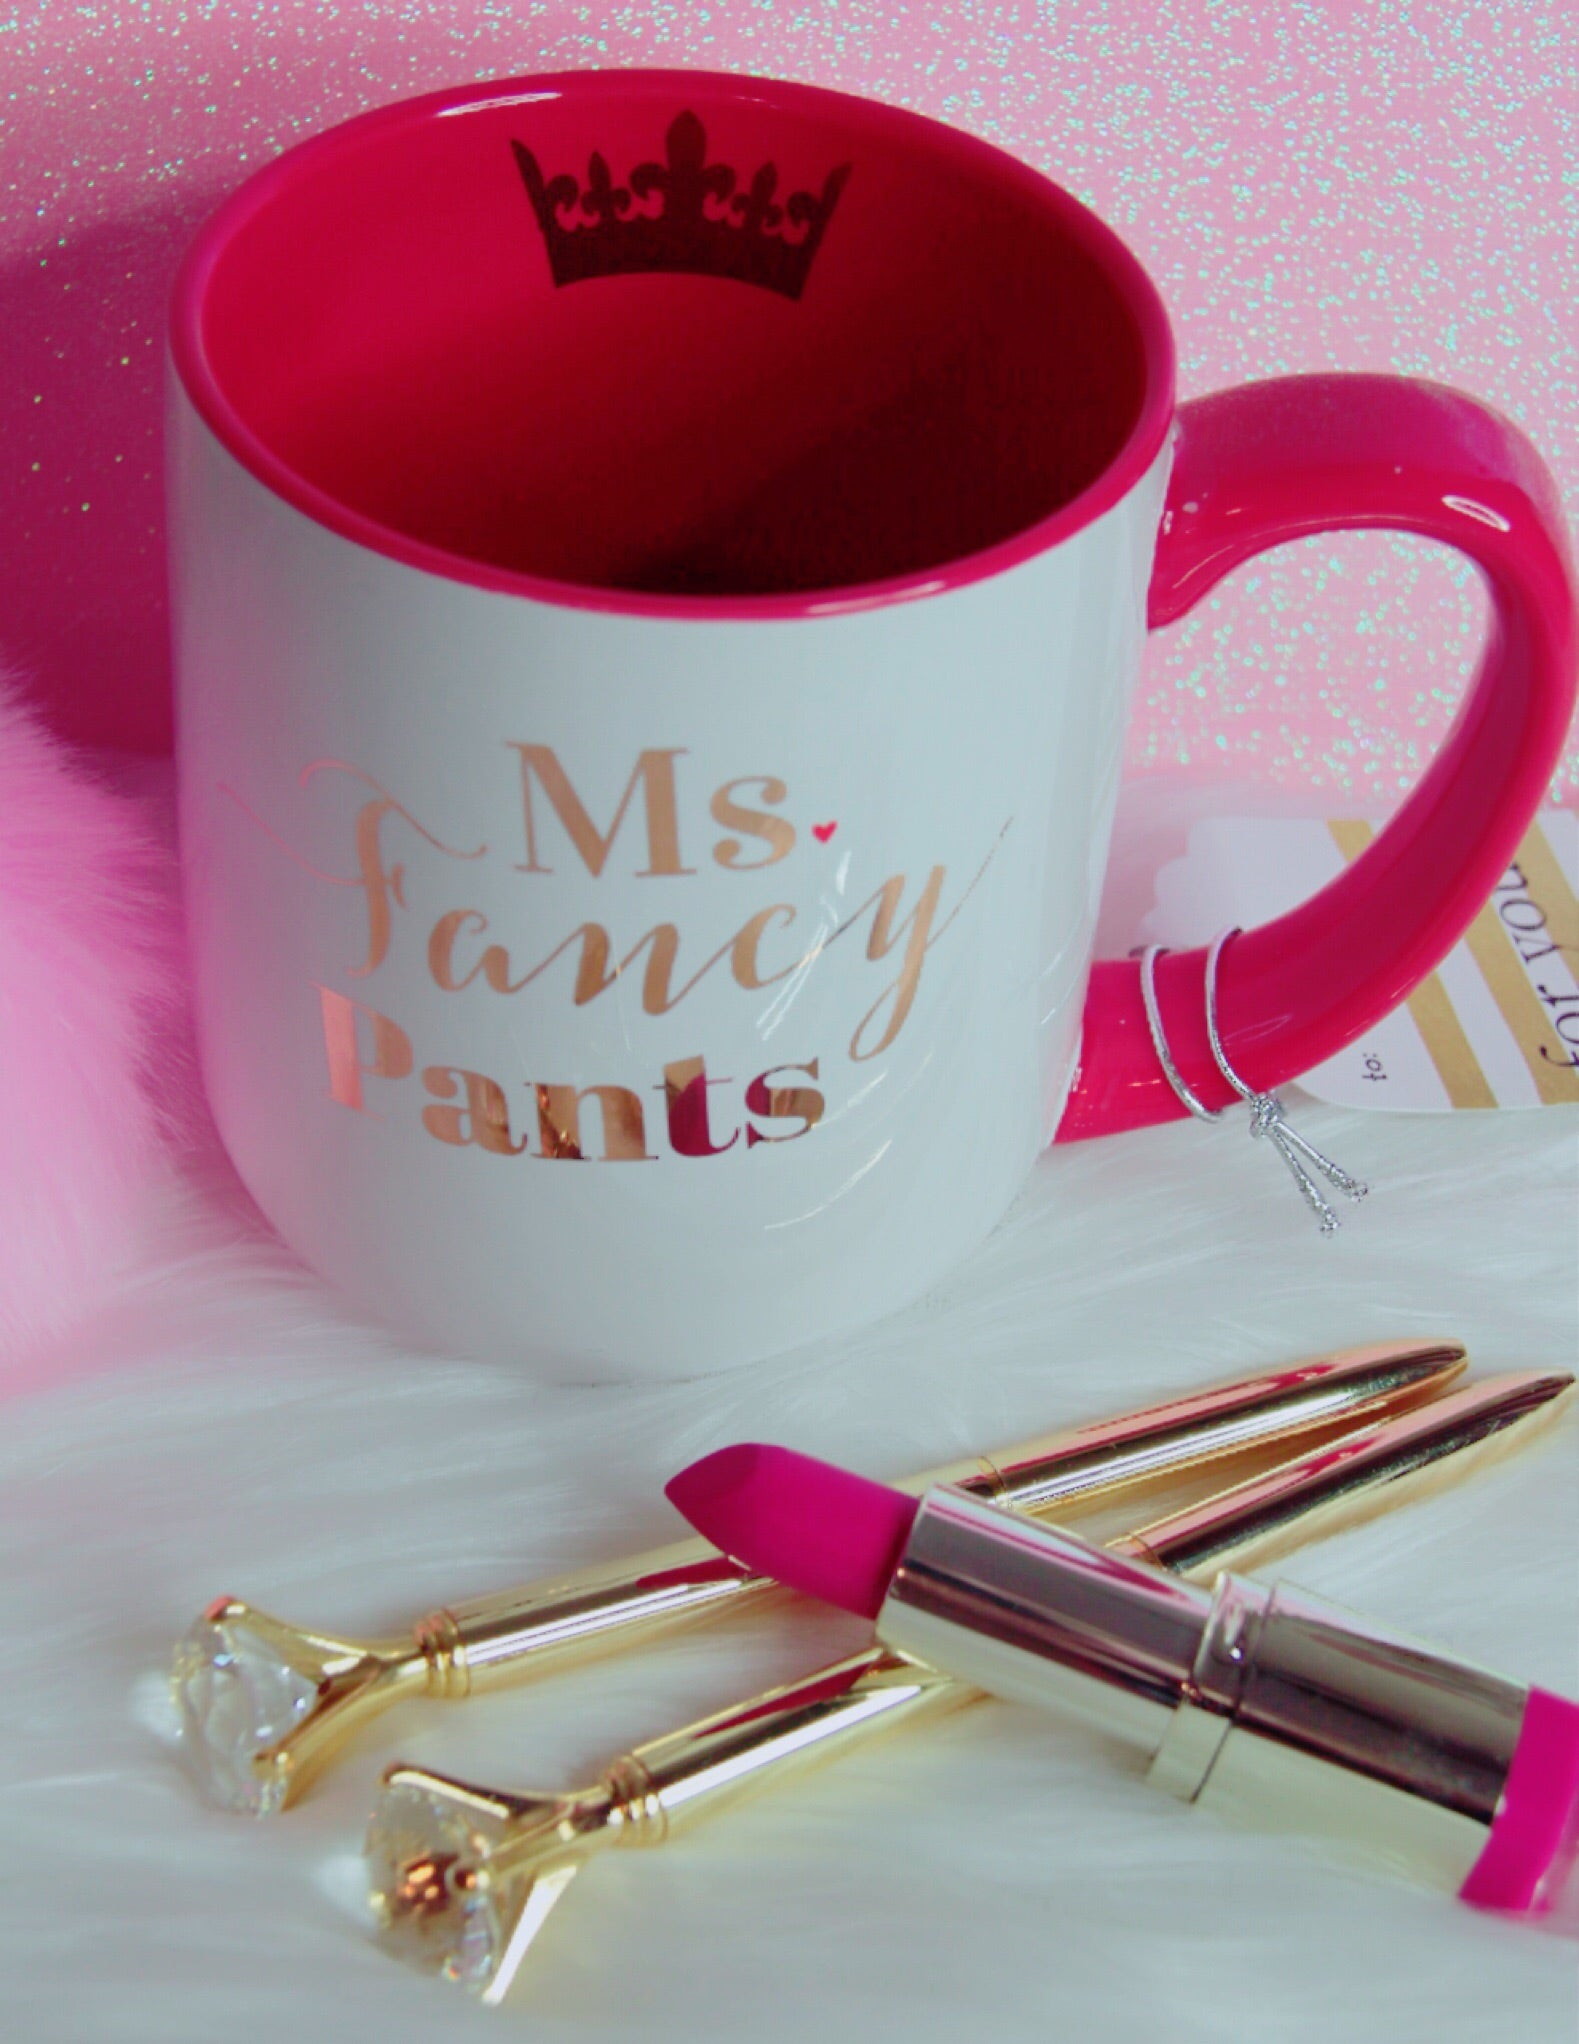 Ms. Fancy Pants mug